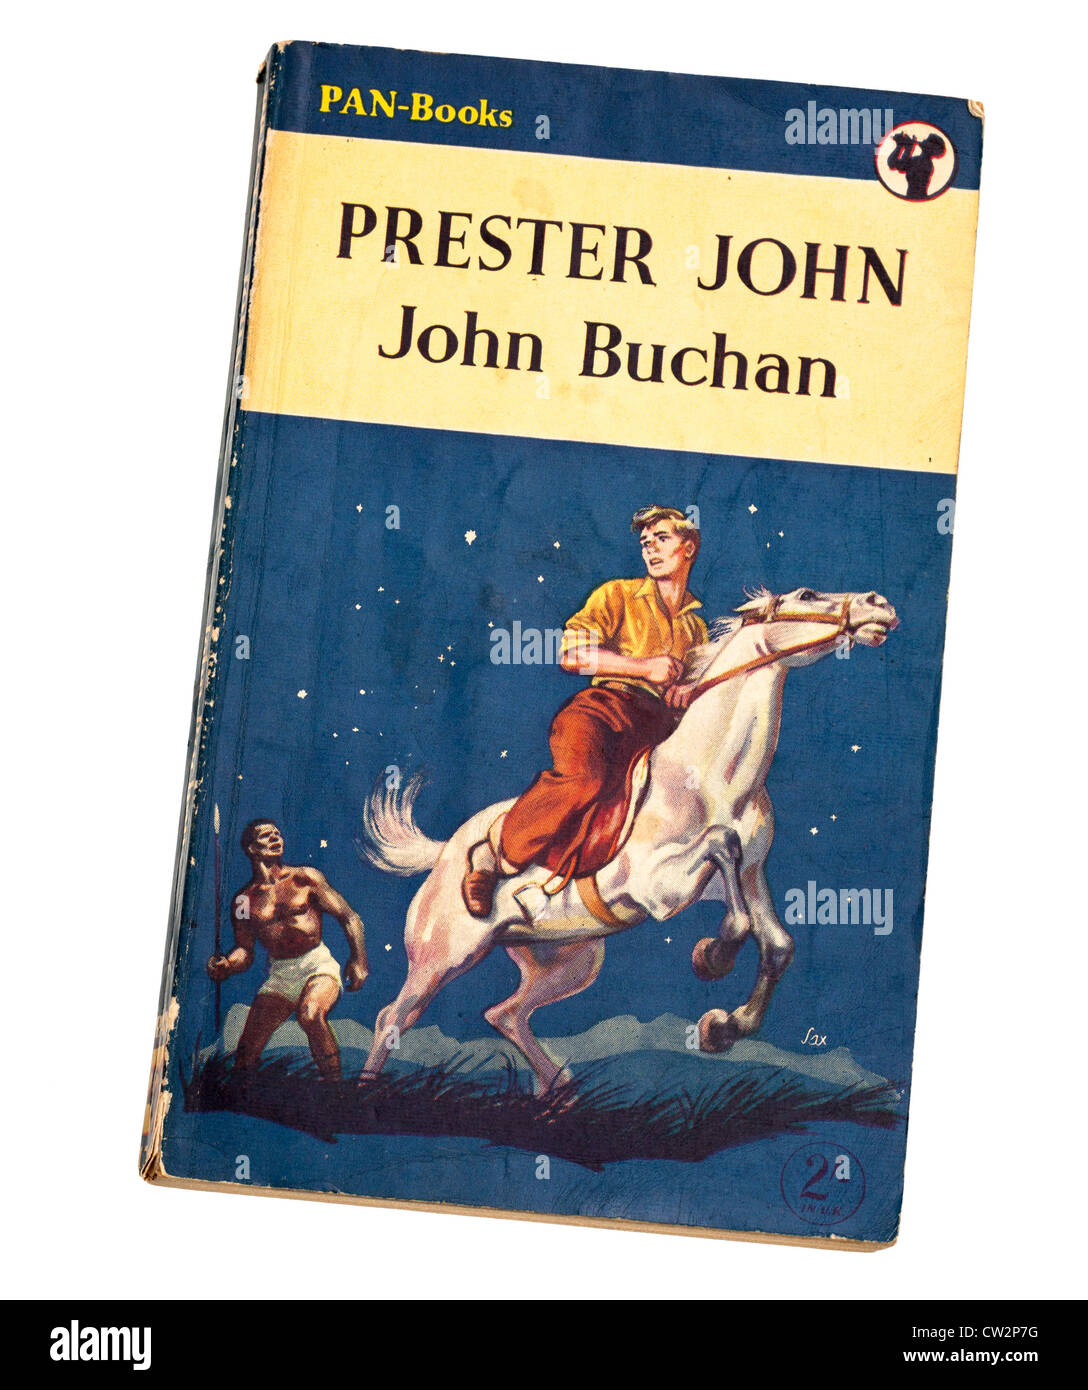 Classic childrens adventure story book Prester John by John Buchan published by Pan - Stock Image